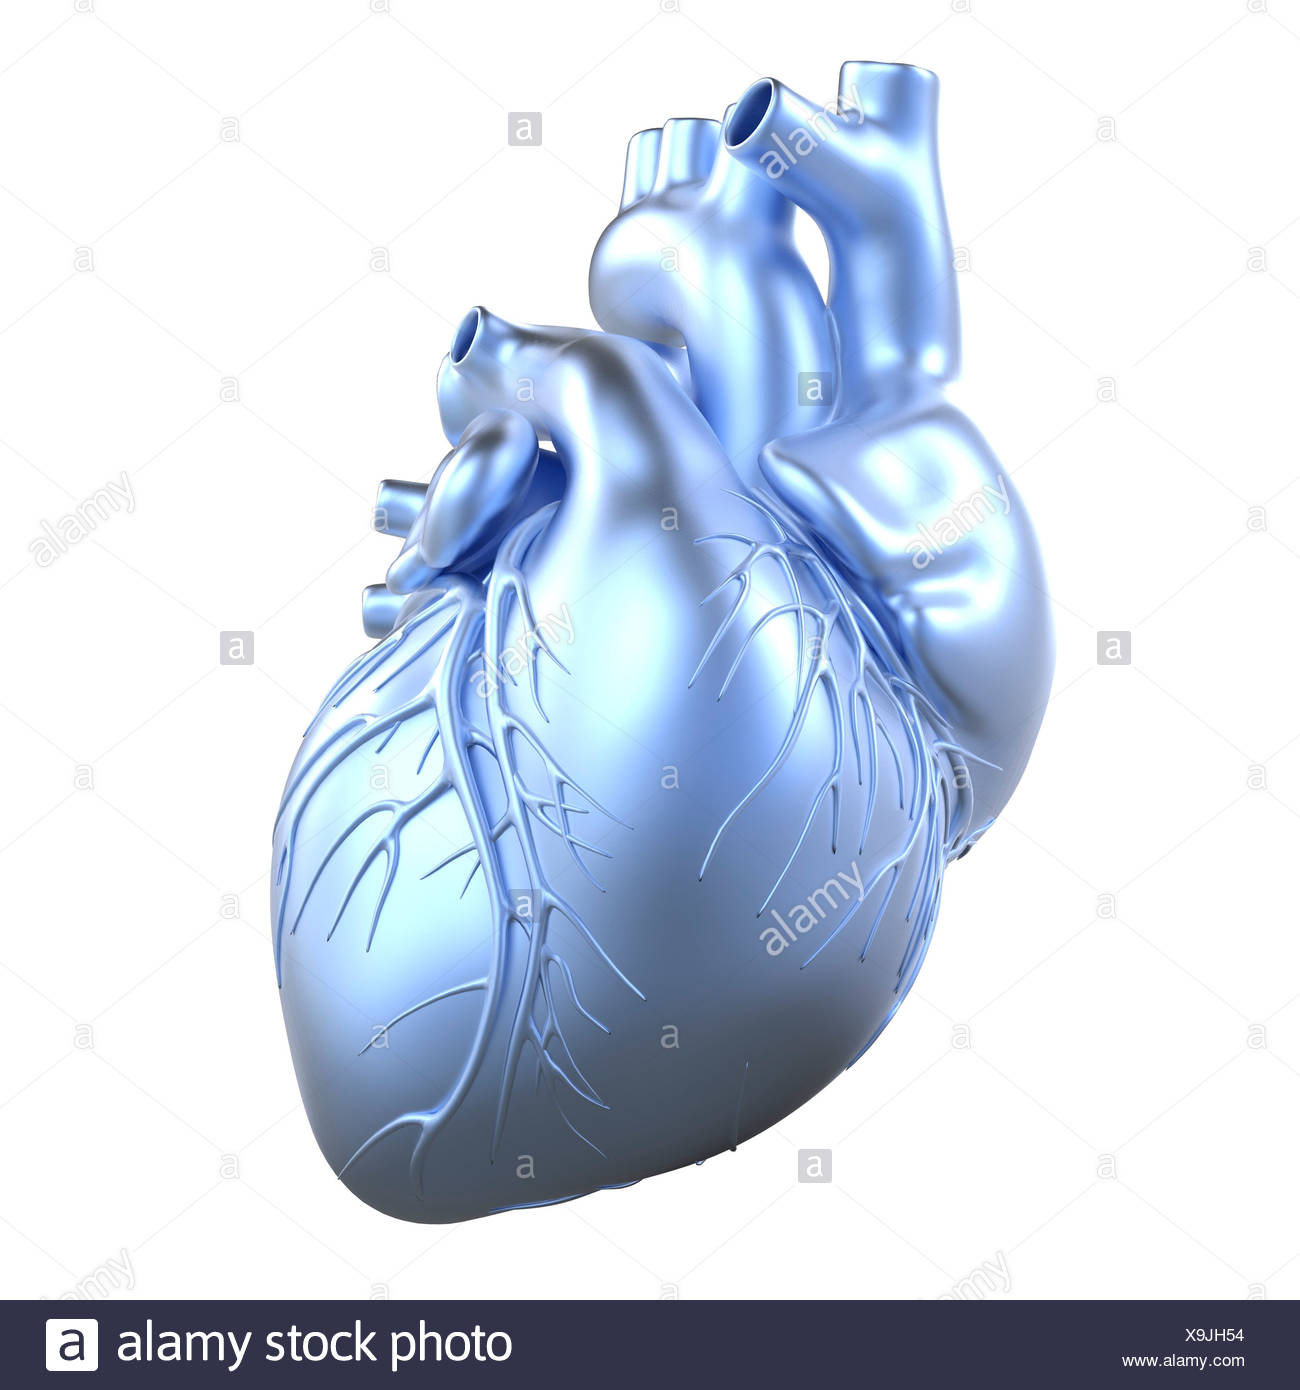 Heart with coronary vessels, artwork - Stock Image